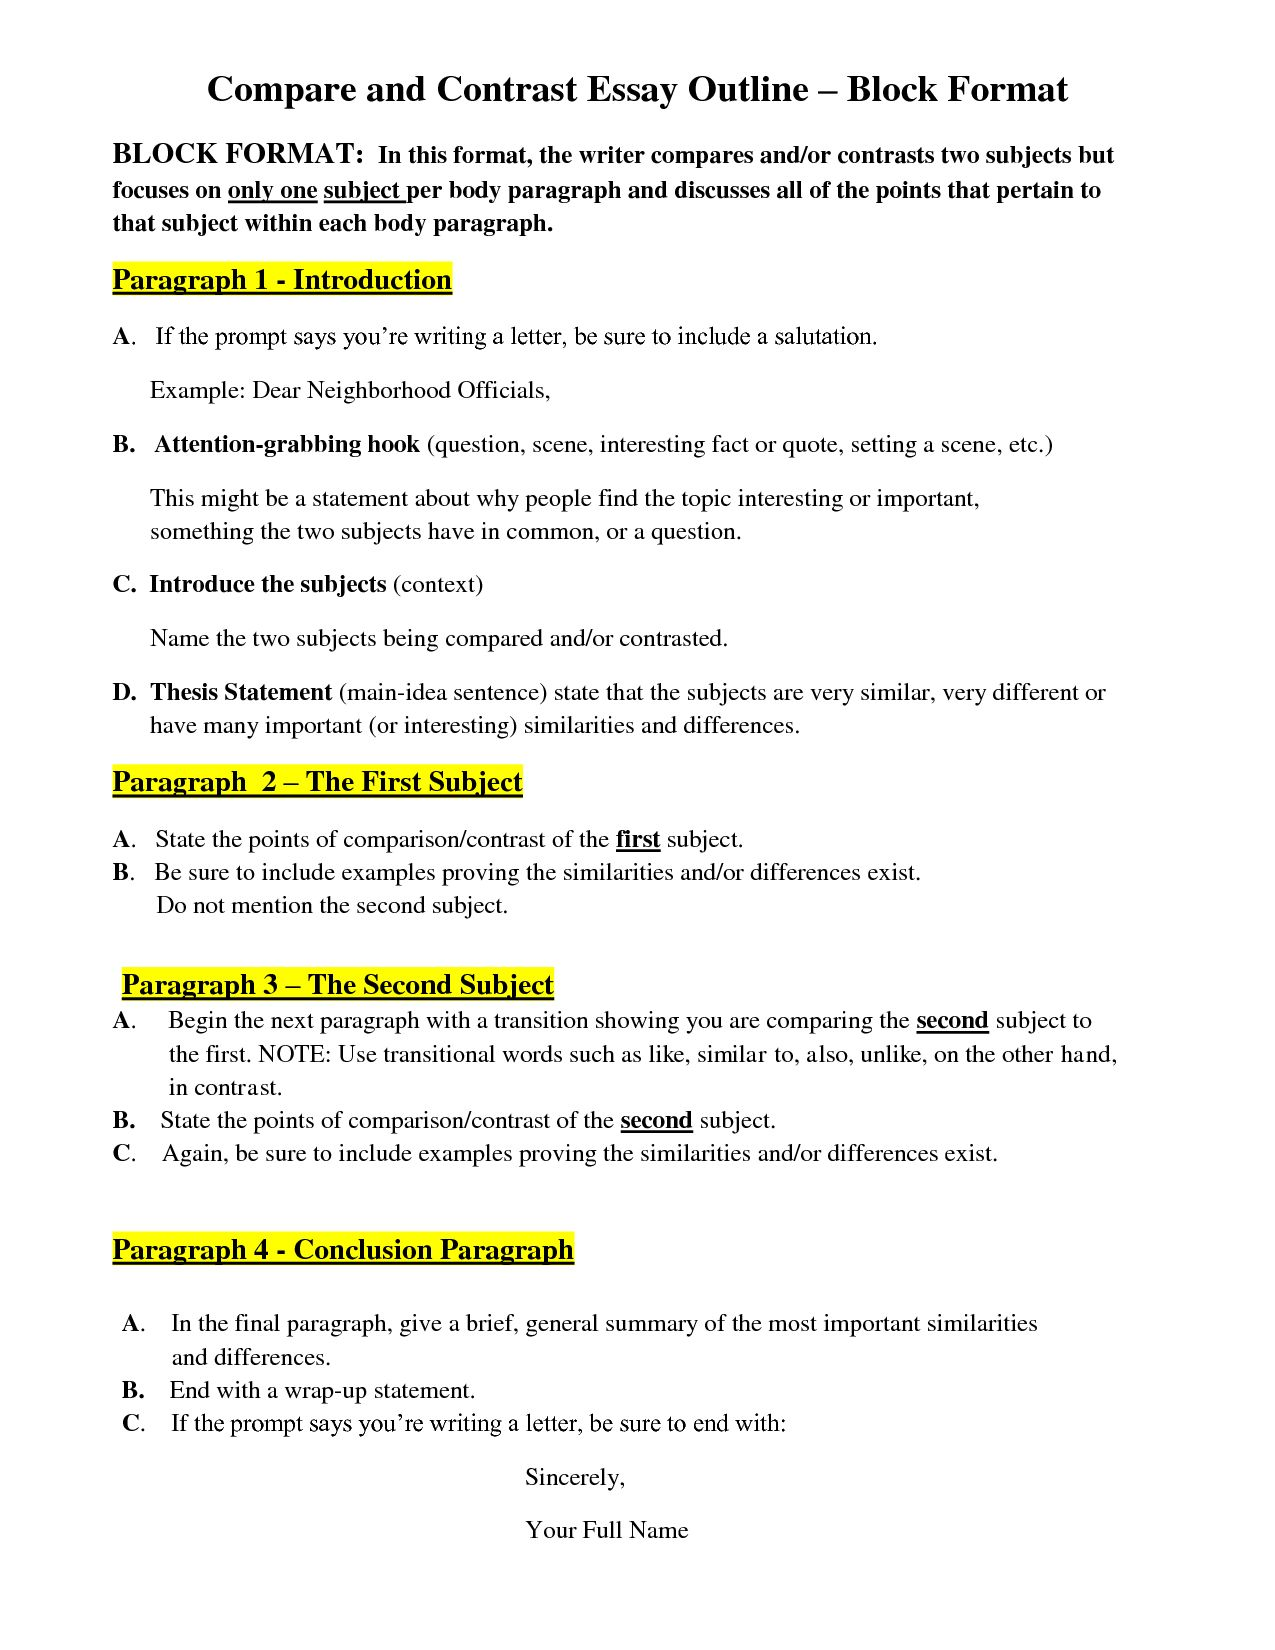 Tips On How To Write Superb Compare And Contrast Essays